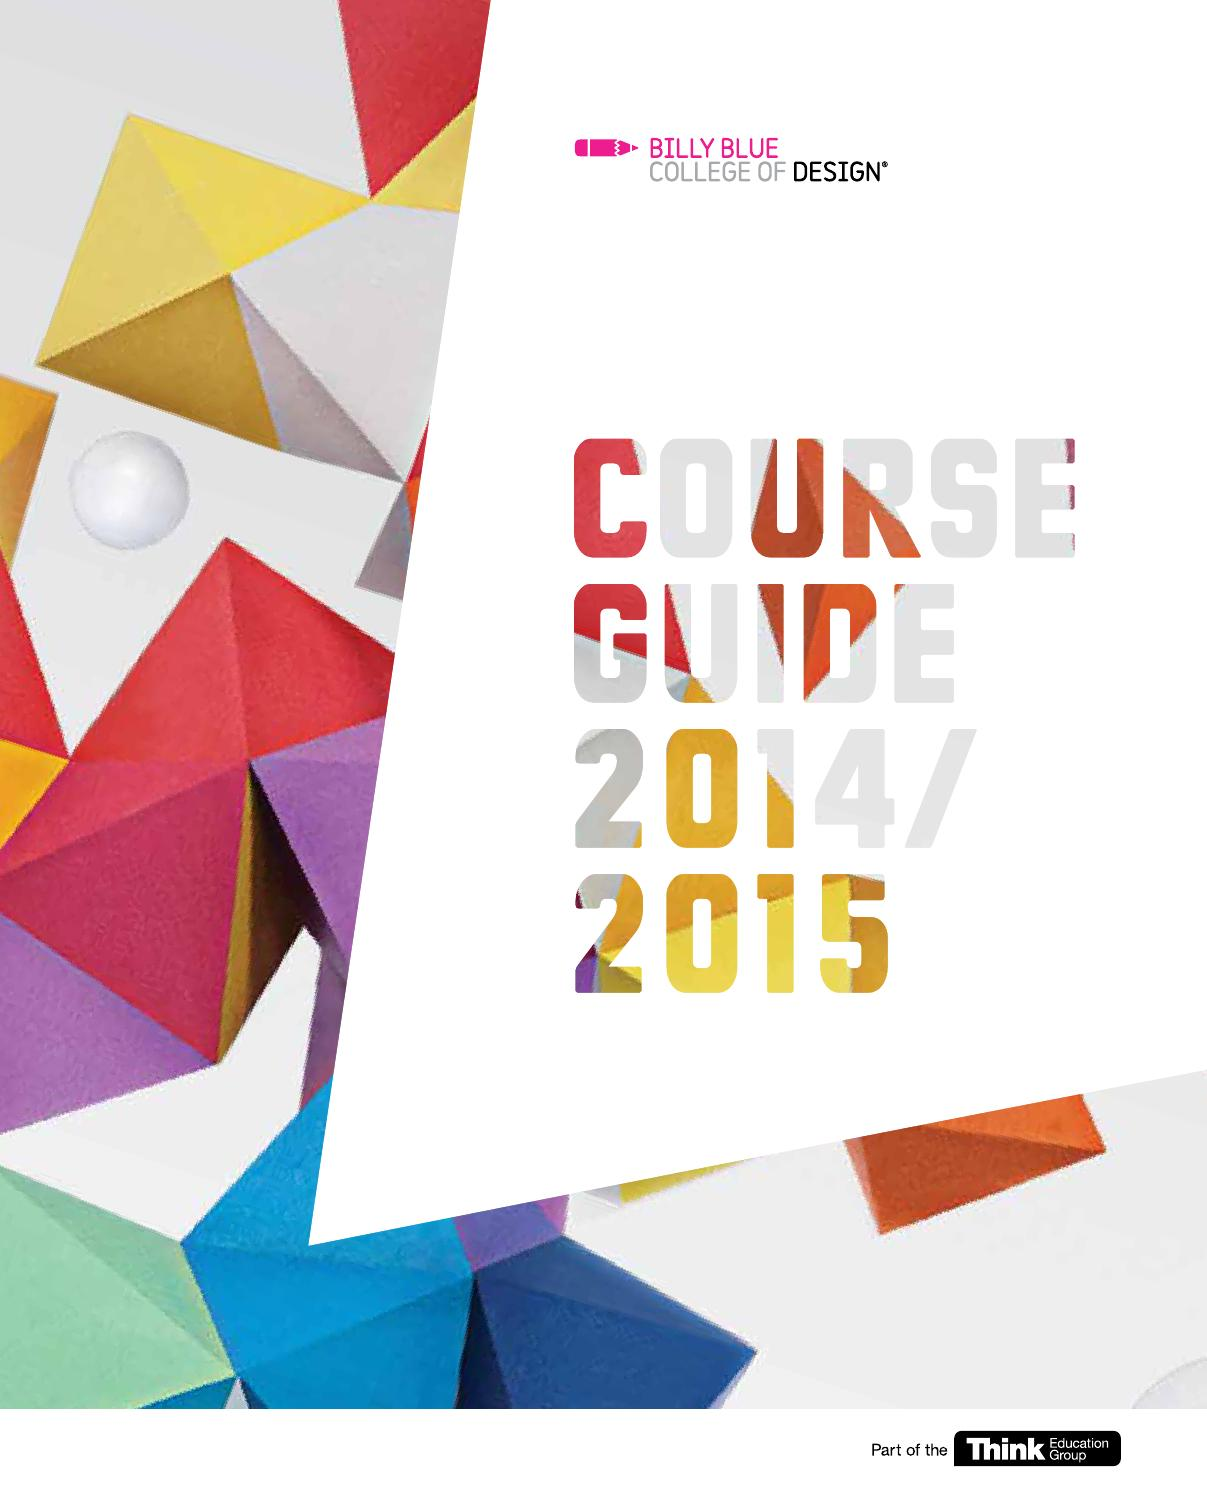 Billy Blue Graphic Design Course Cost